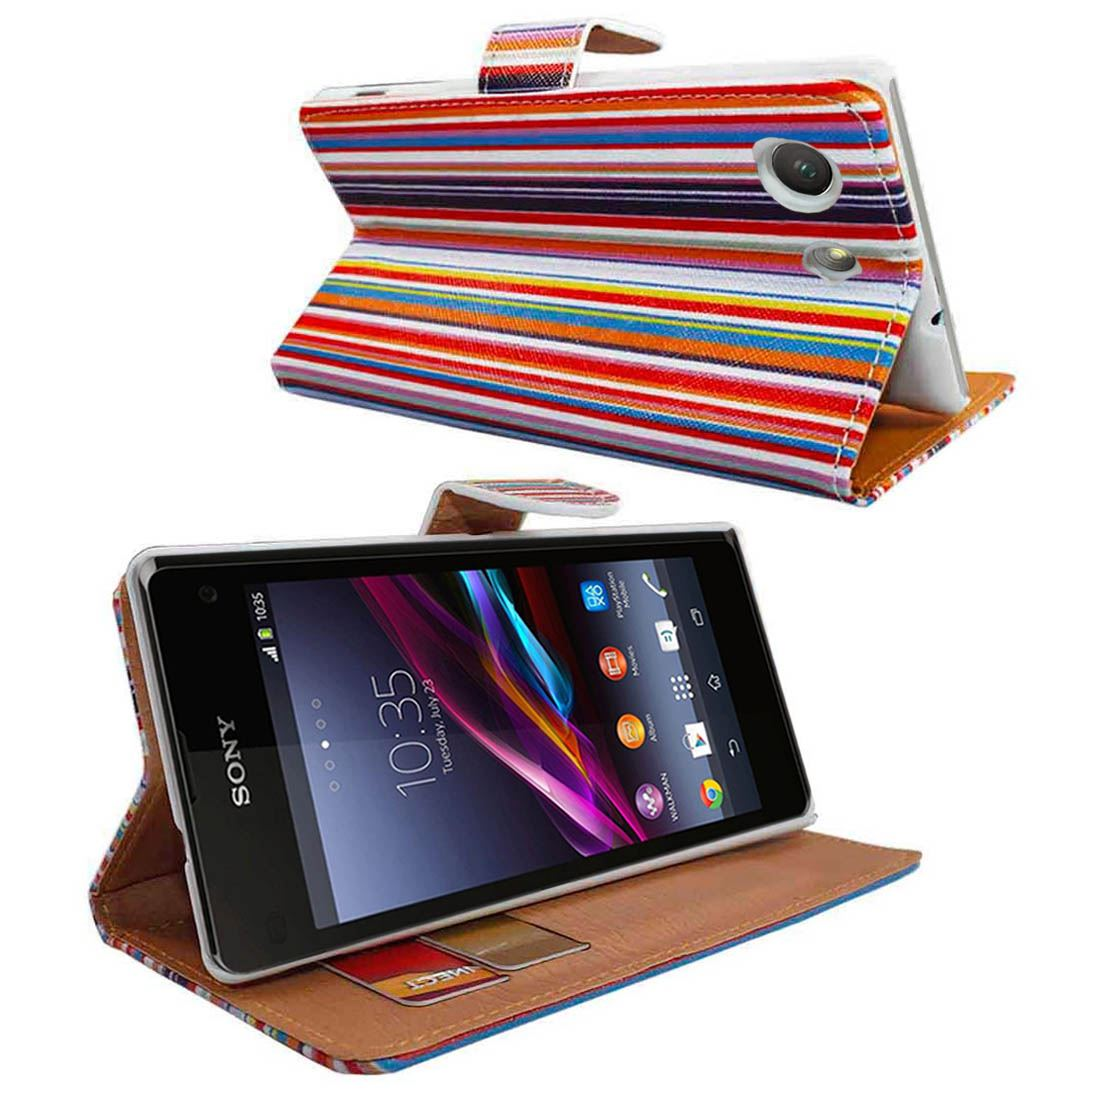 UK- Rainbow Stripes Wallet Flip PU Leather Case Cover For Various Mobile Phone